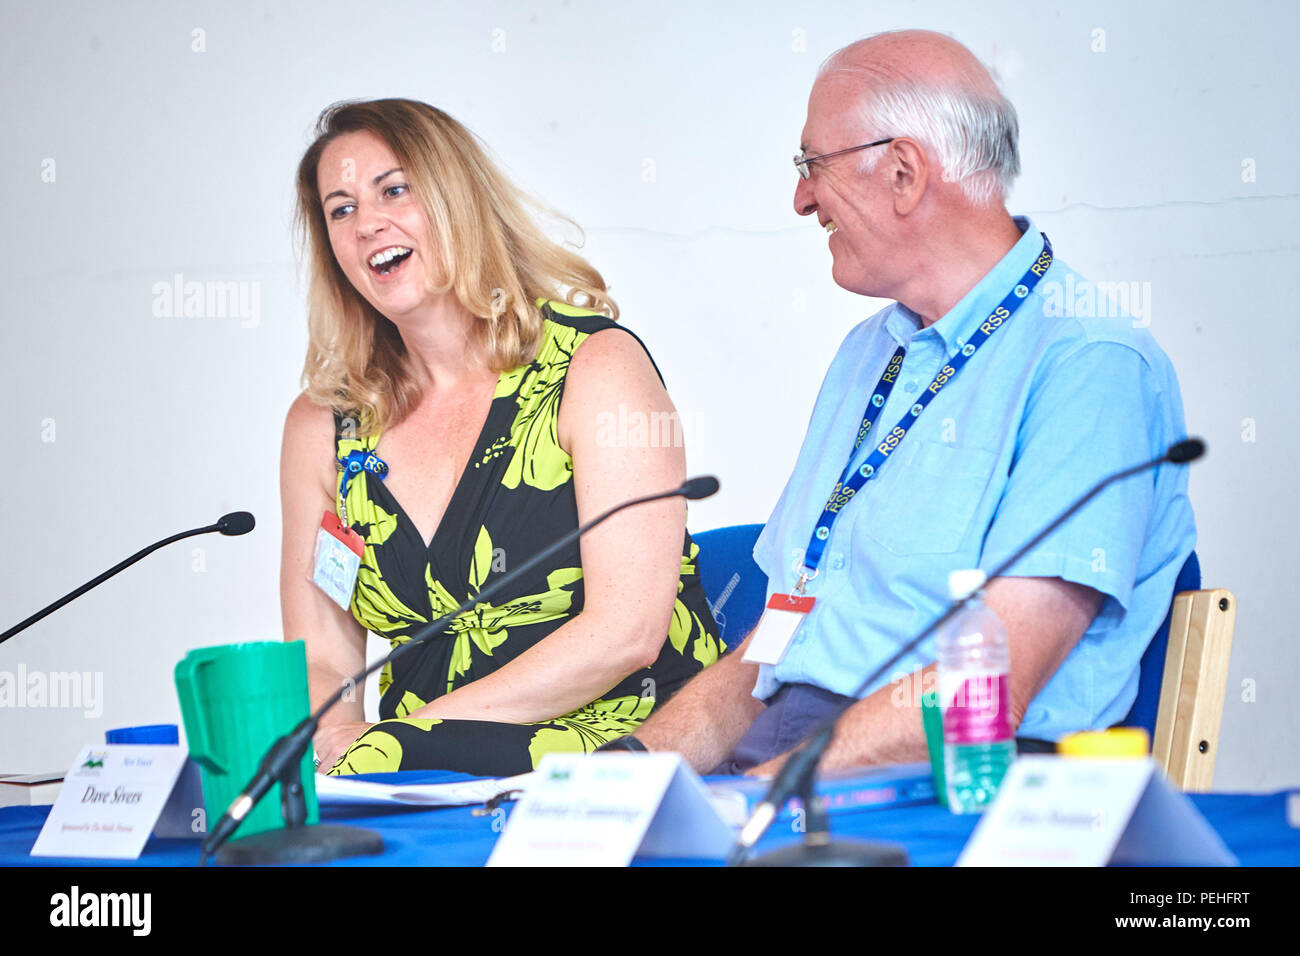 Dave Sivers (R) moderates the New Voices Panel at BeaconLit book festival in Ivinghoe, with debut author Stephanie Marland (L), who writes as Steph Broadribb - Stock Image